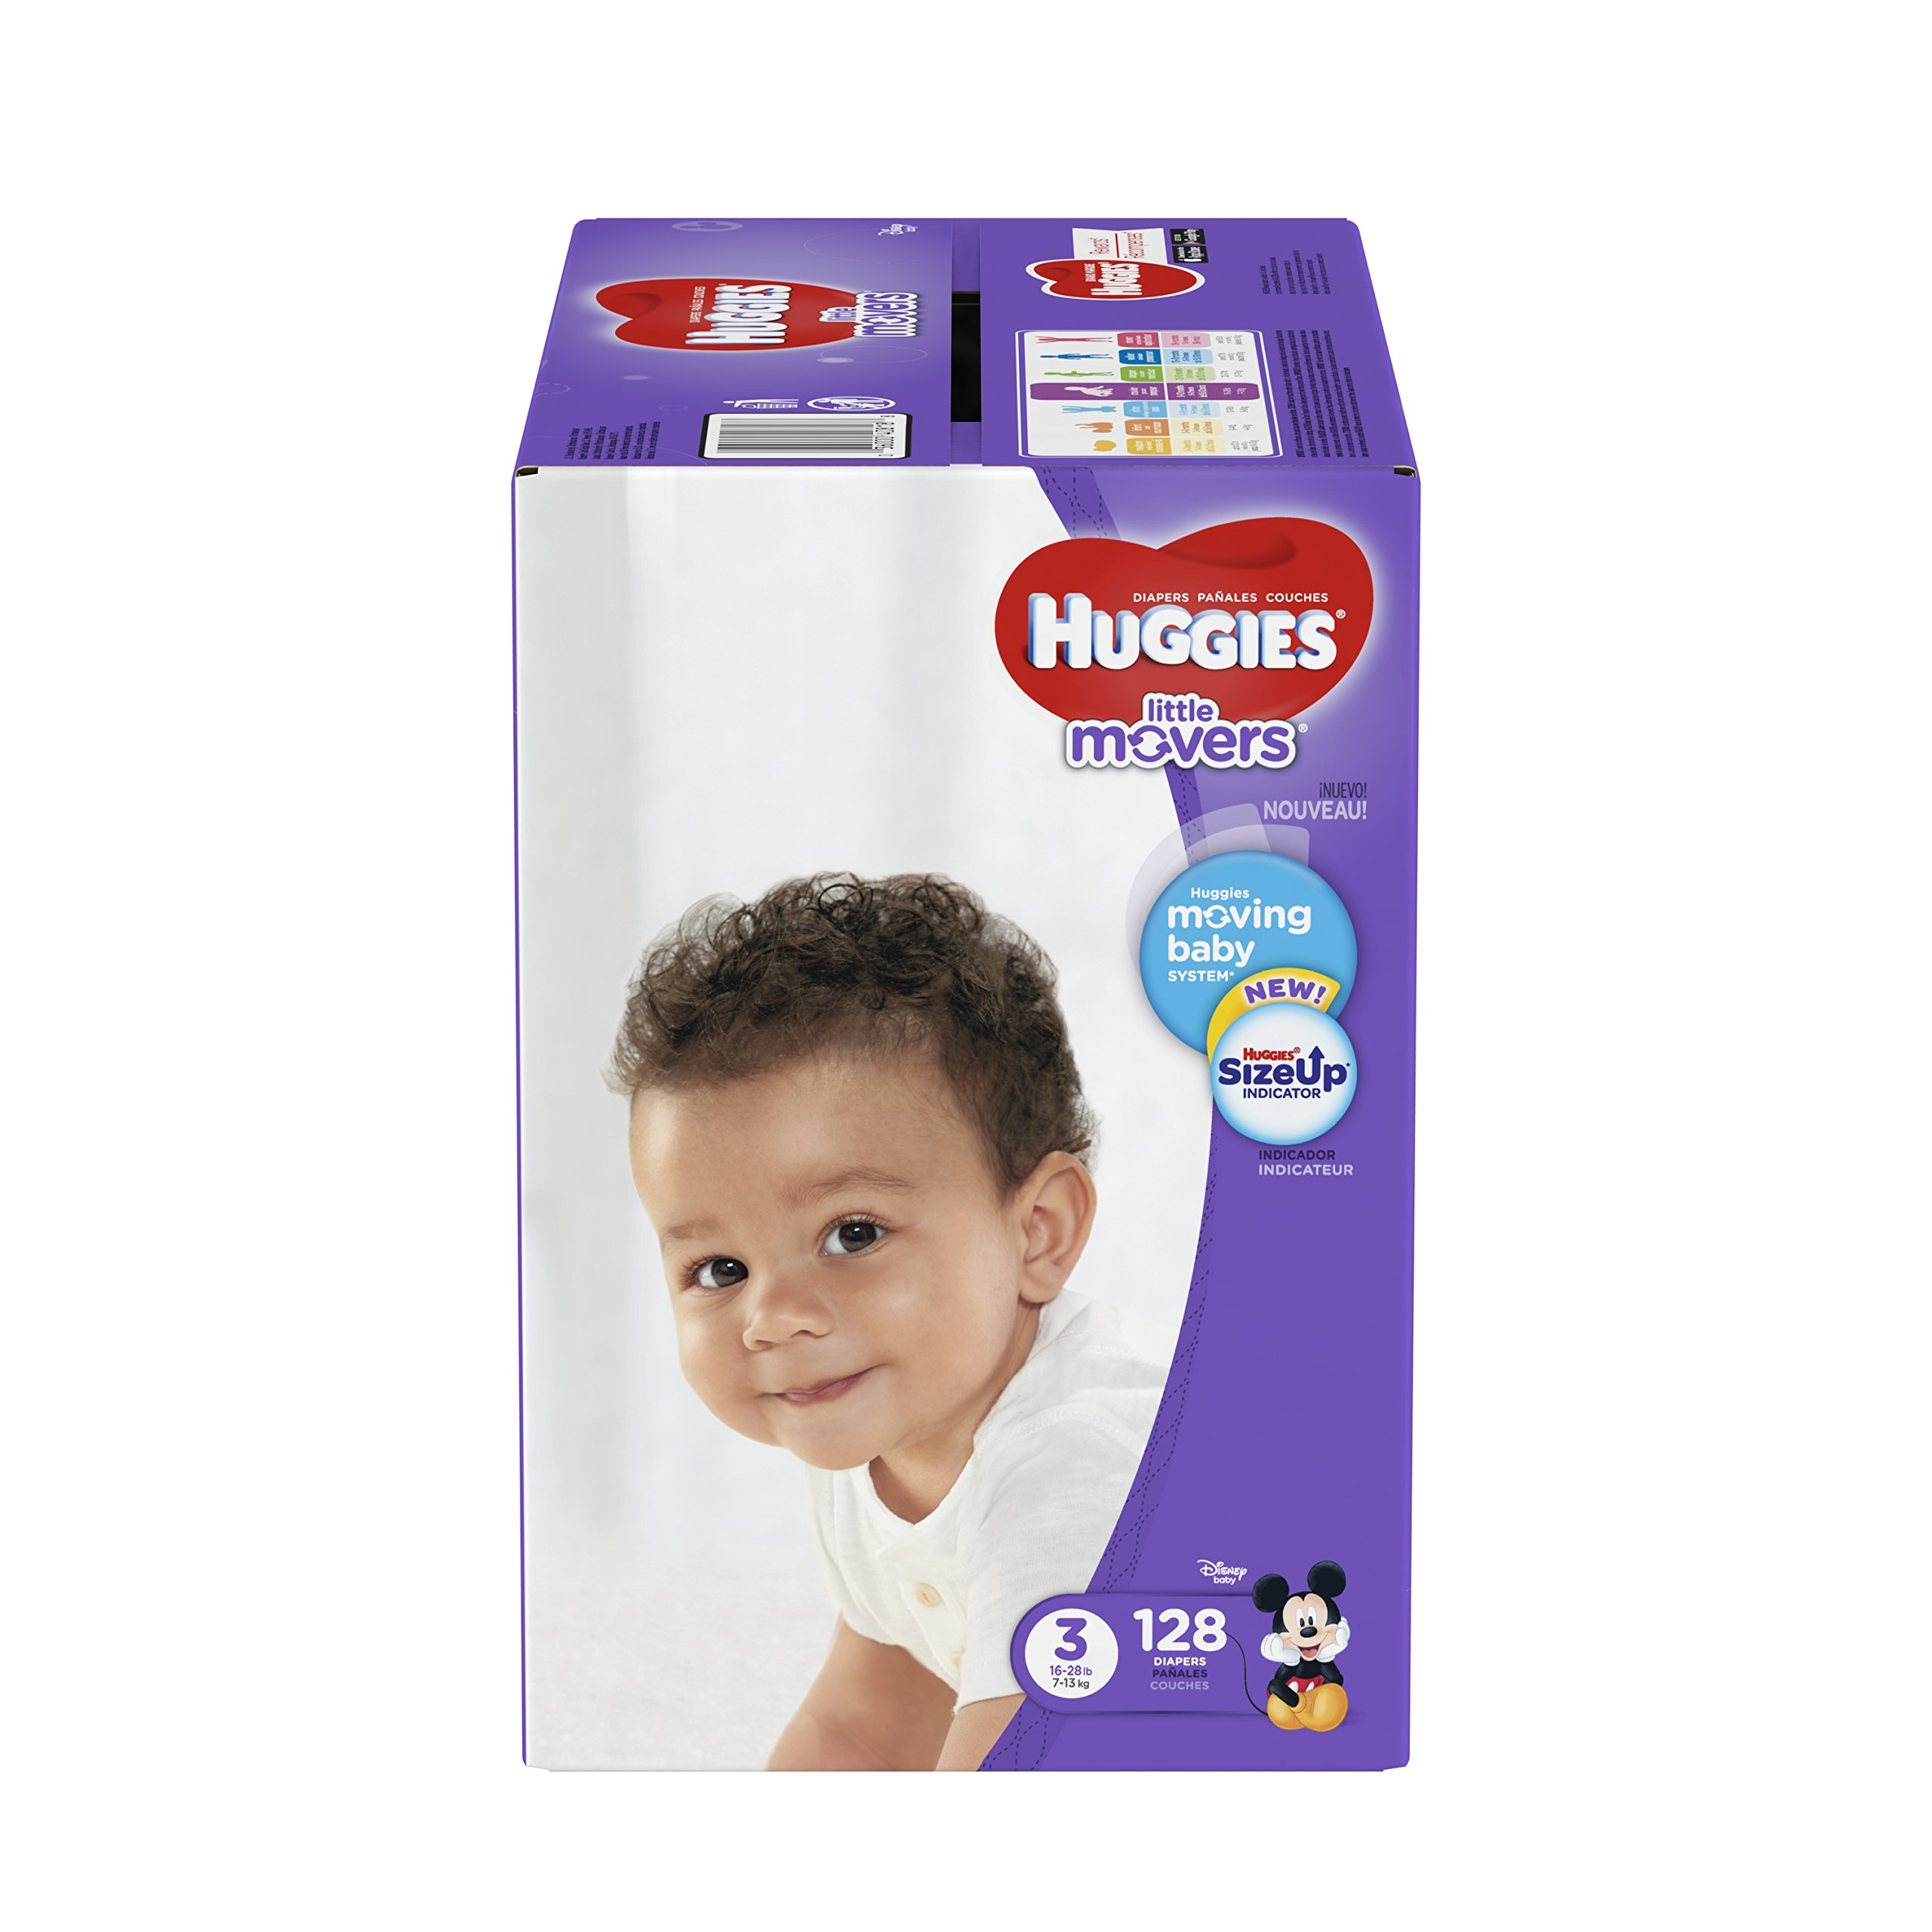 HUGGIES LITTLE MOVERS Diapers, Size 3 (16-28 lb.), 128